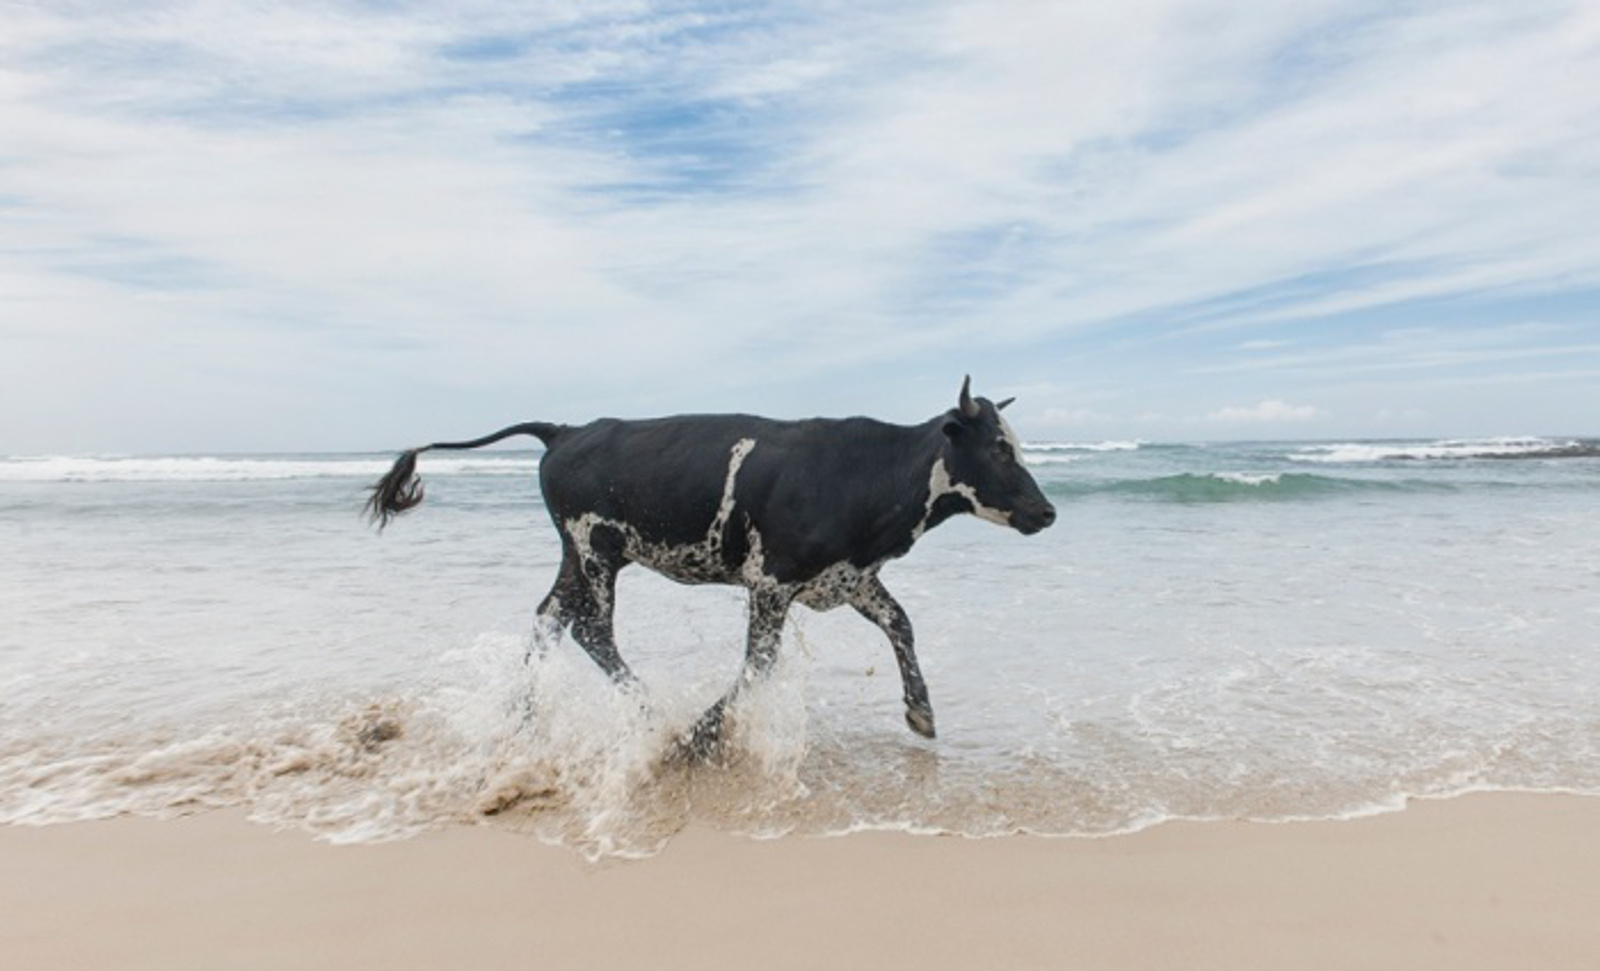 Christopher Rimmer photographs cattle in Pondoland